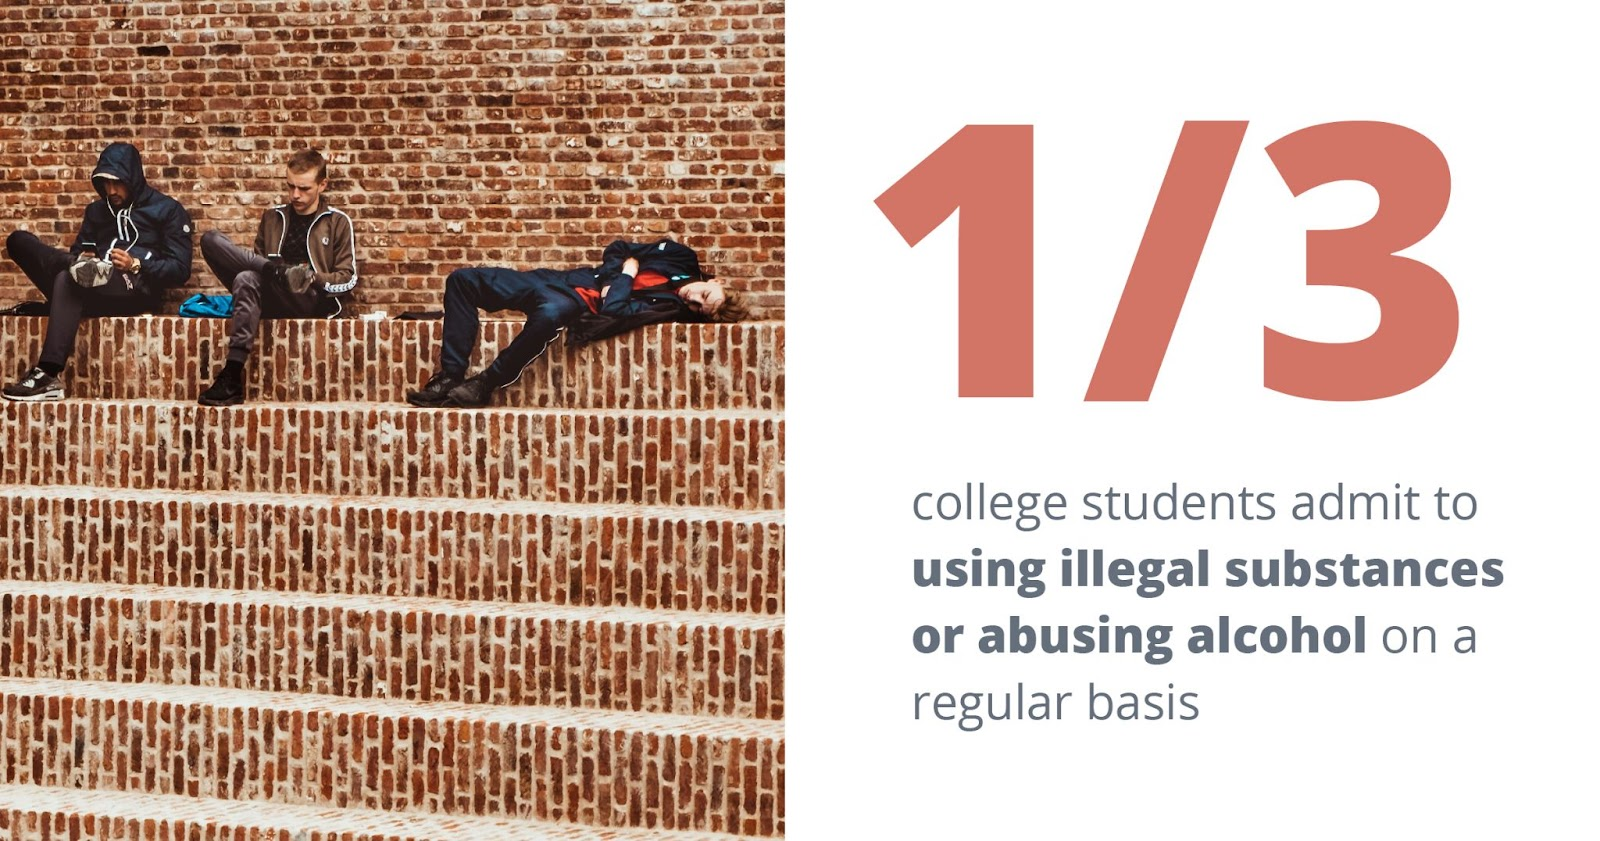 1/3 college students admit to using illegal substances or abusing alcohol on a regular basis